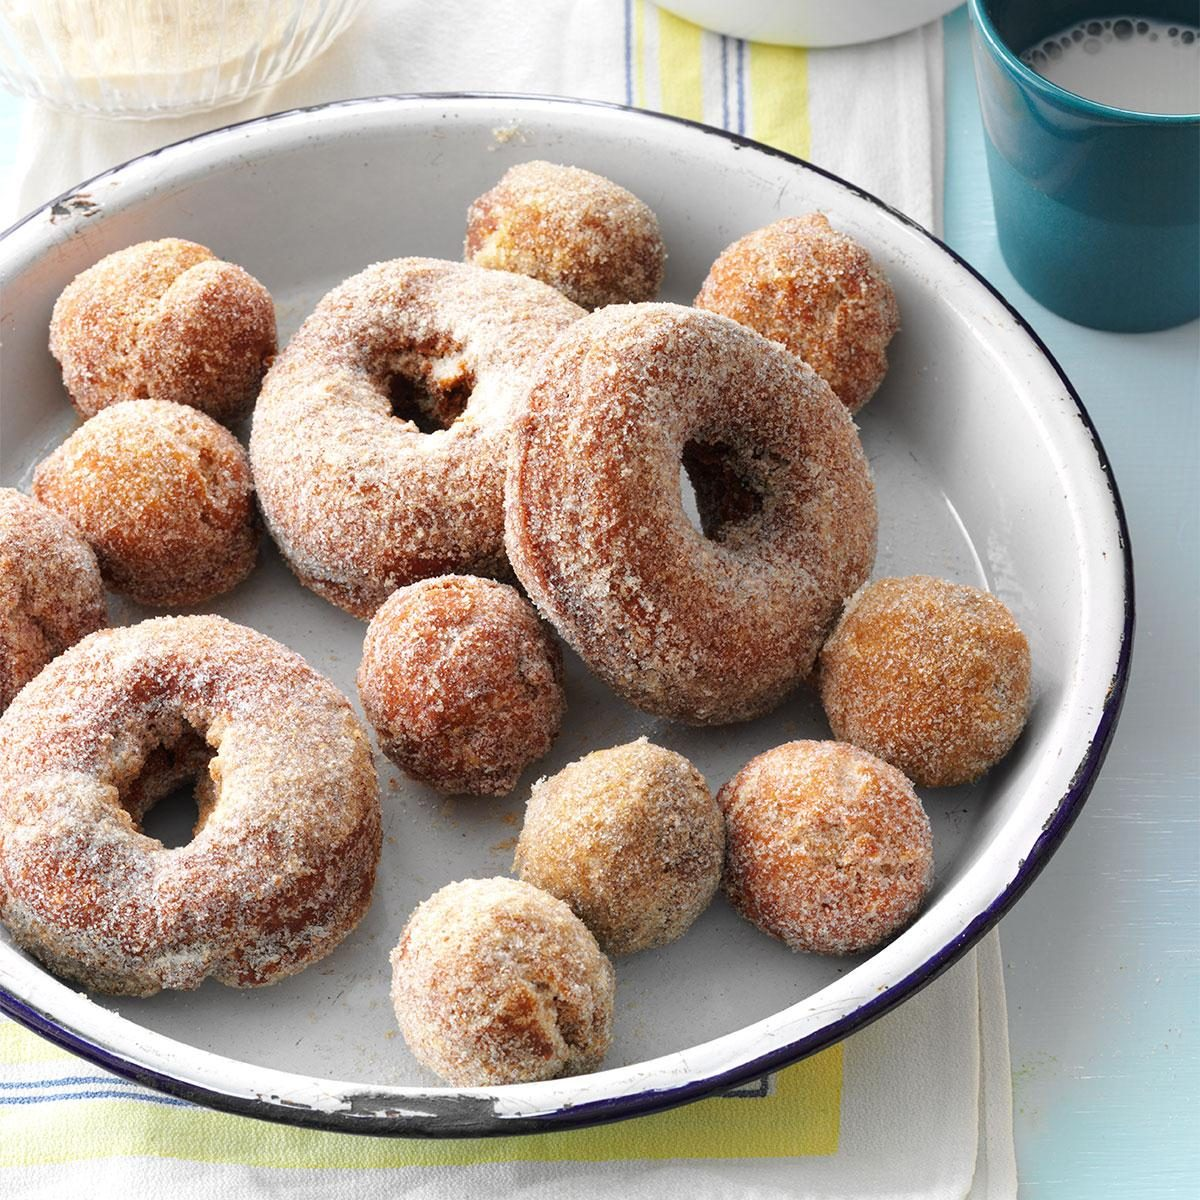 Wisconsin: Apple Cider Doughnuts